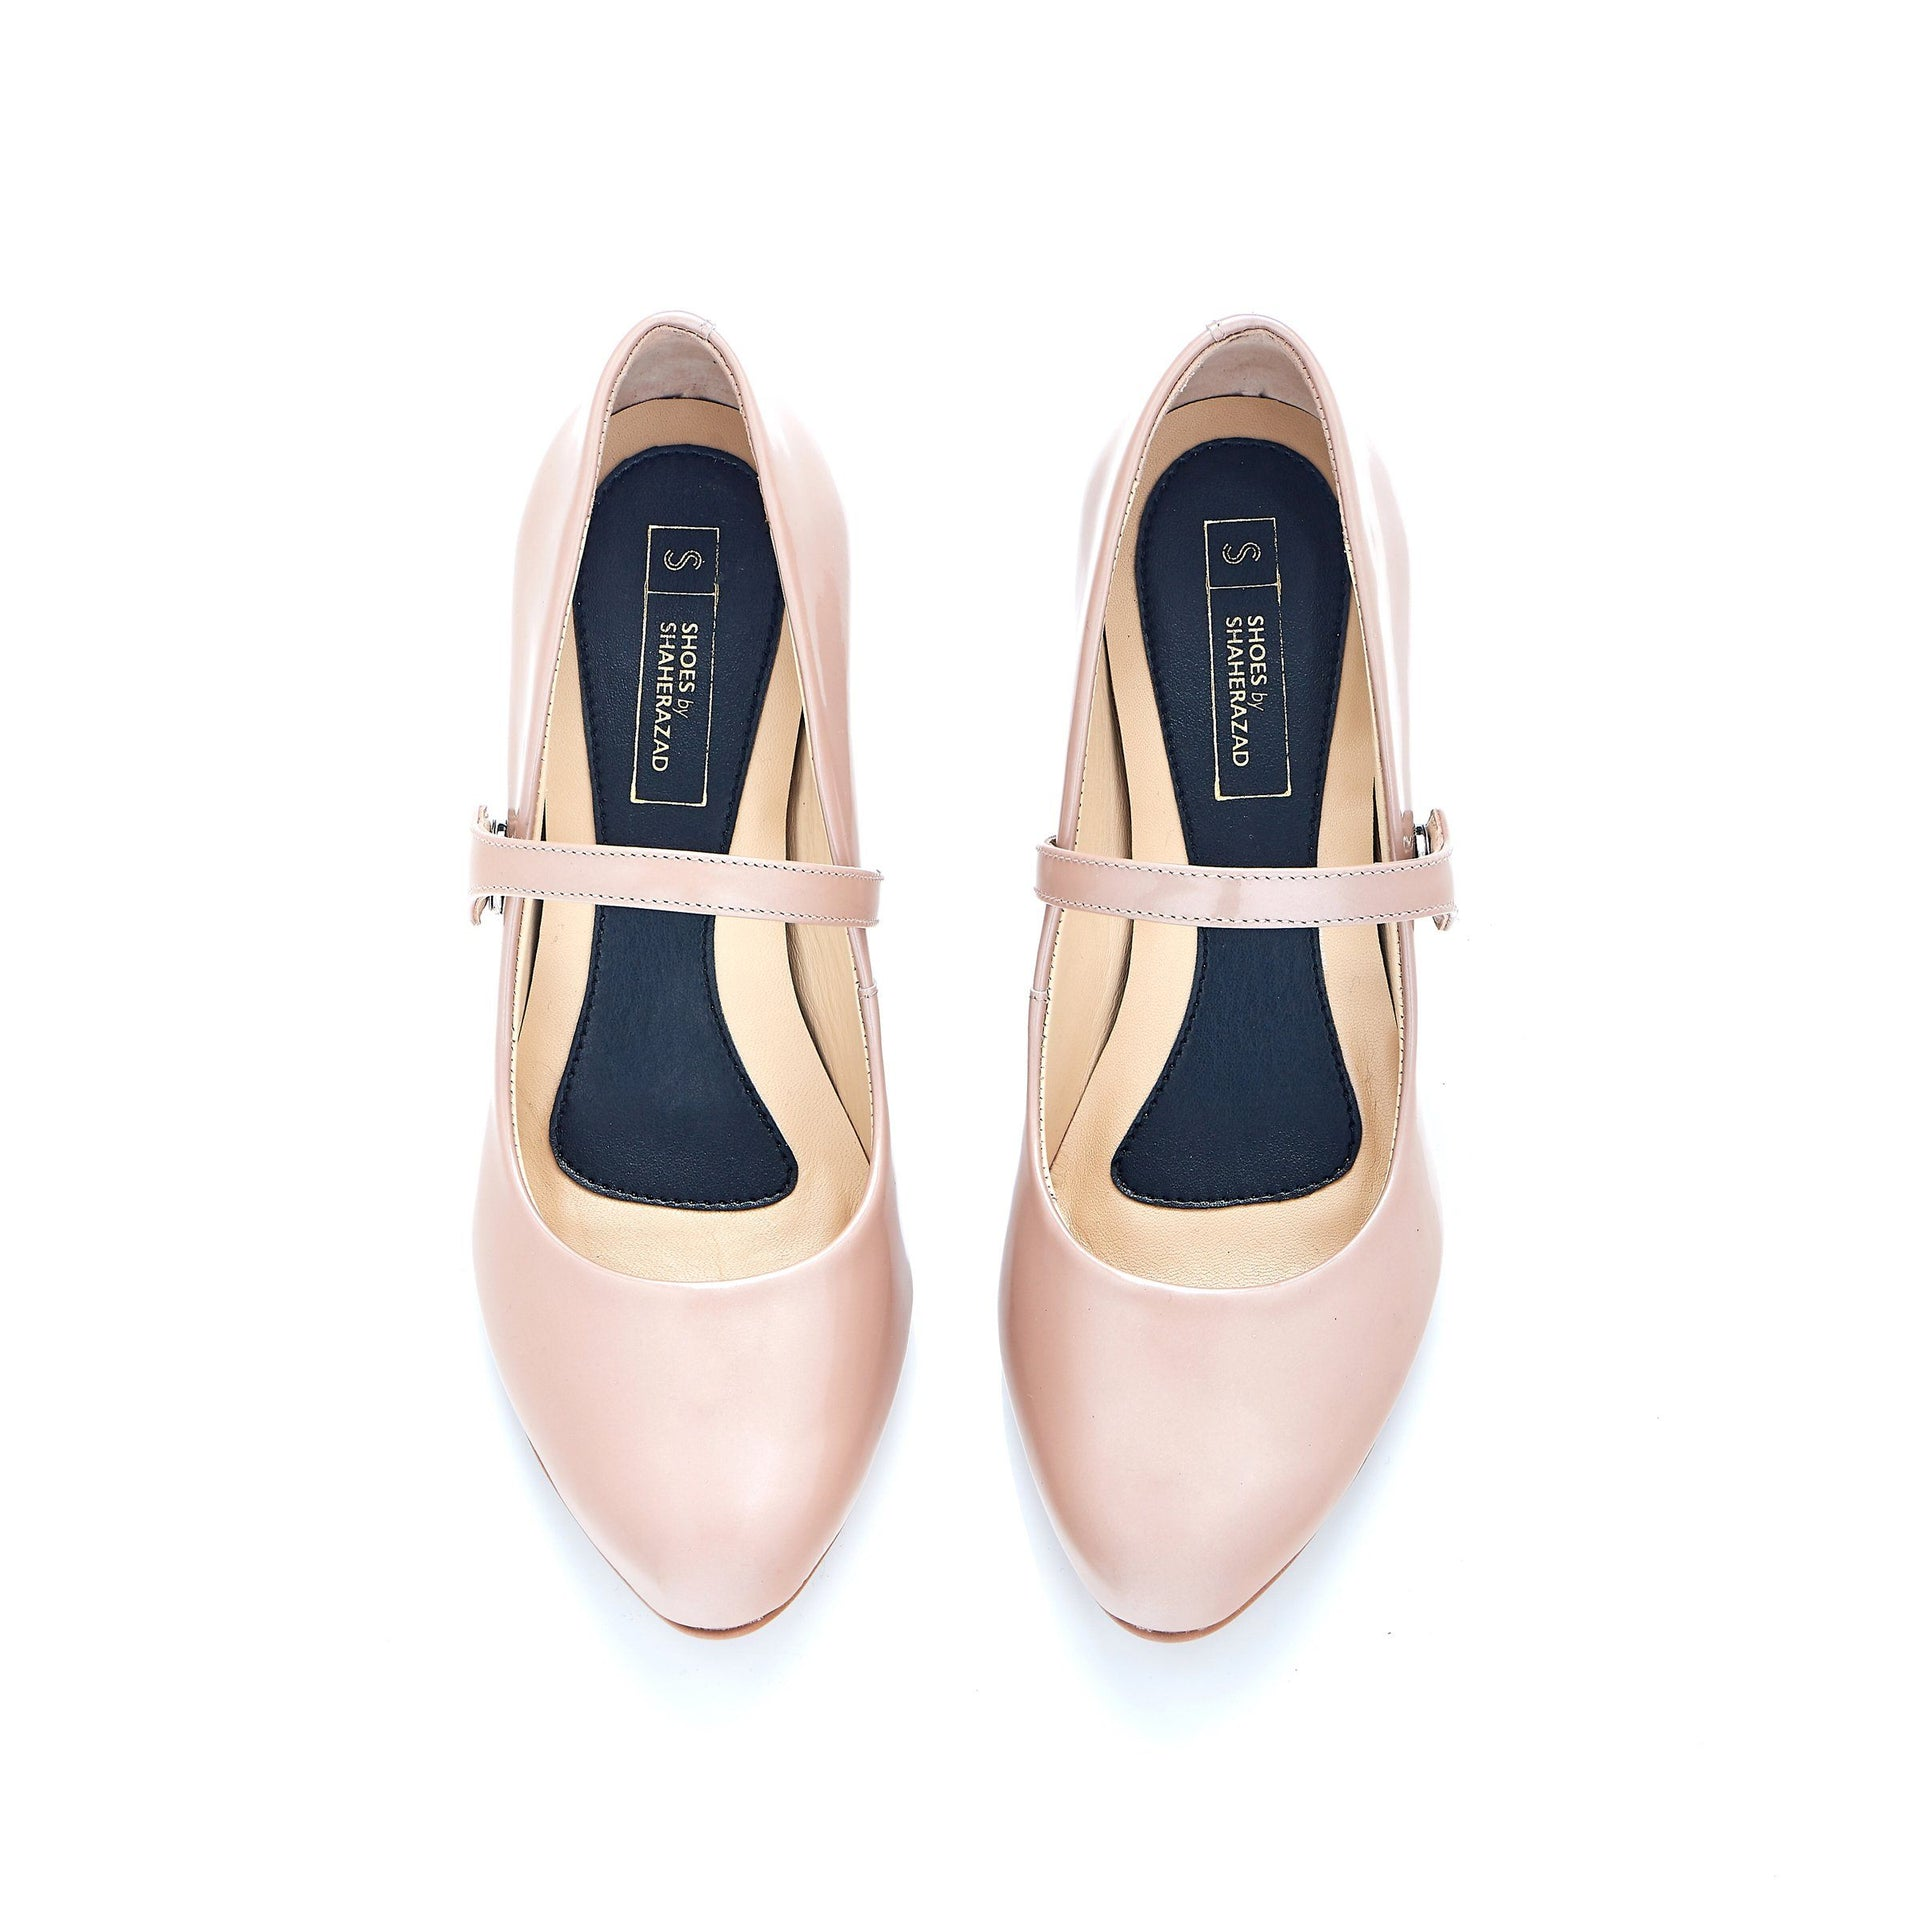 Take My Lead - Block Heels - Blush Leather - Shoes by Shaherazad